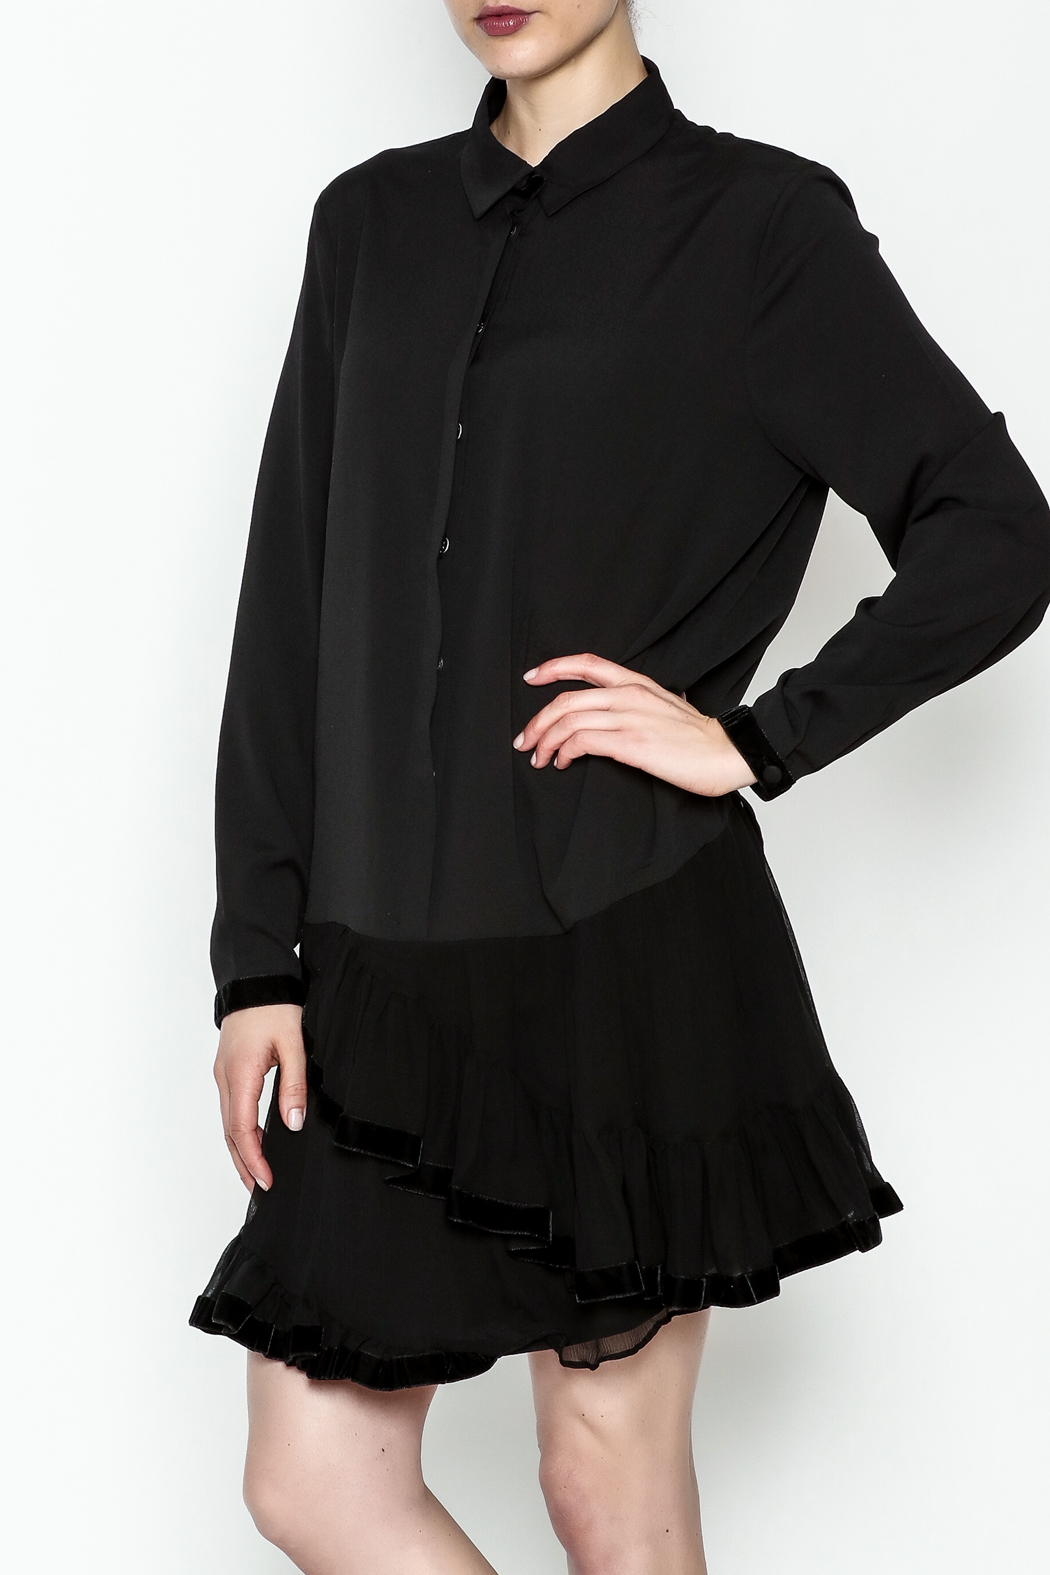 Maison Pere Long Sleeve Ruffle Dress - Front Cropped Image